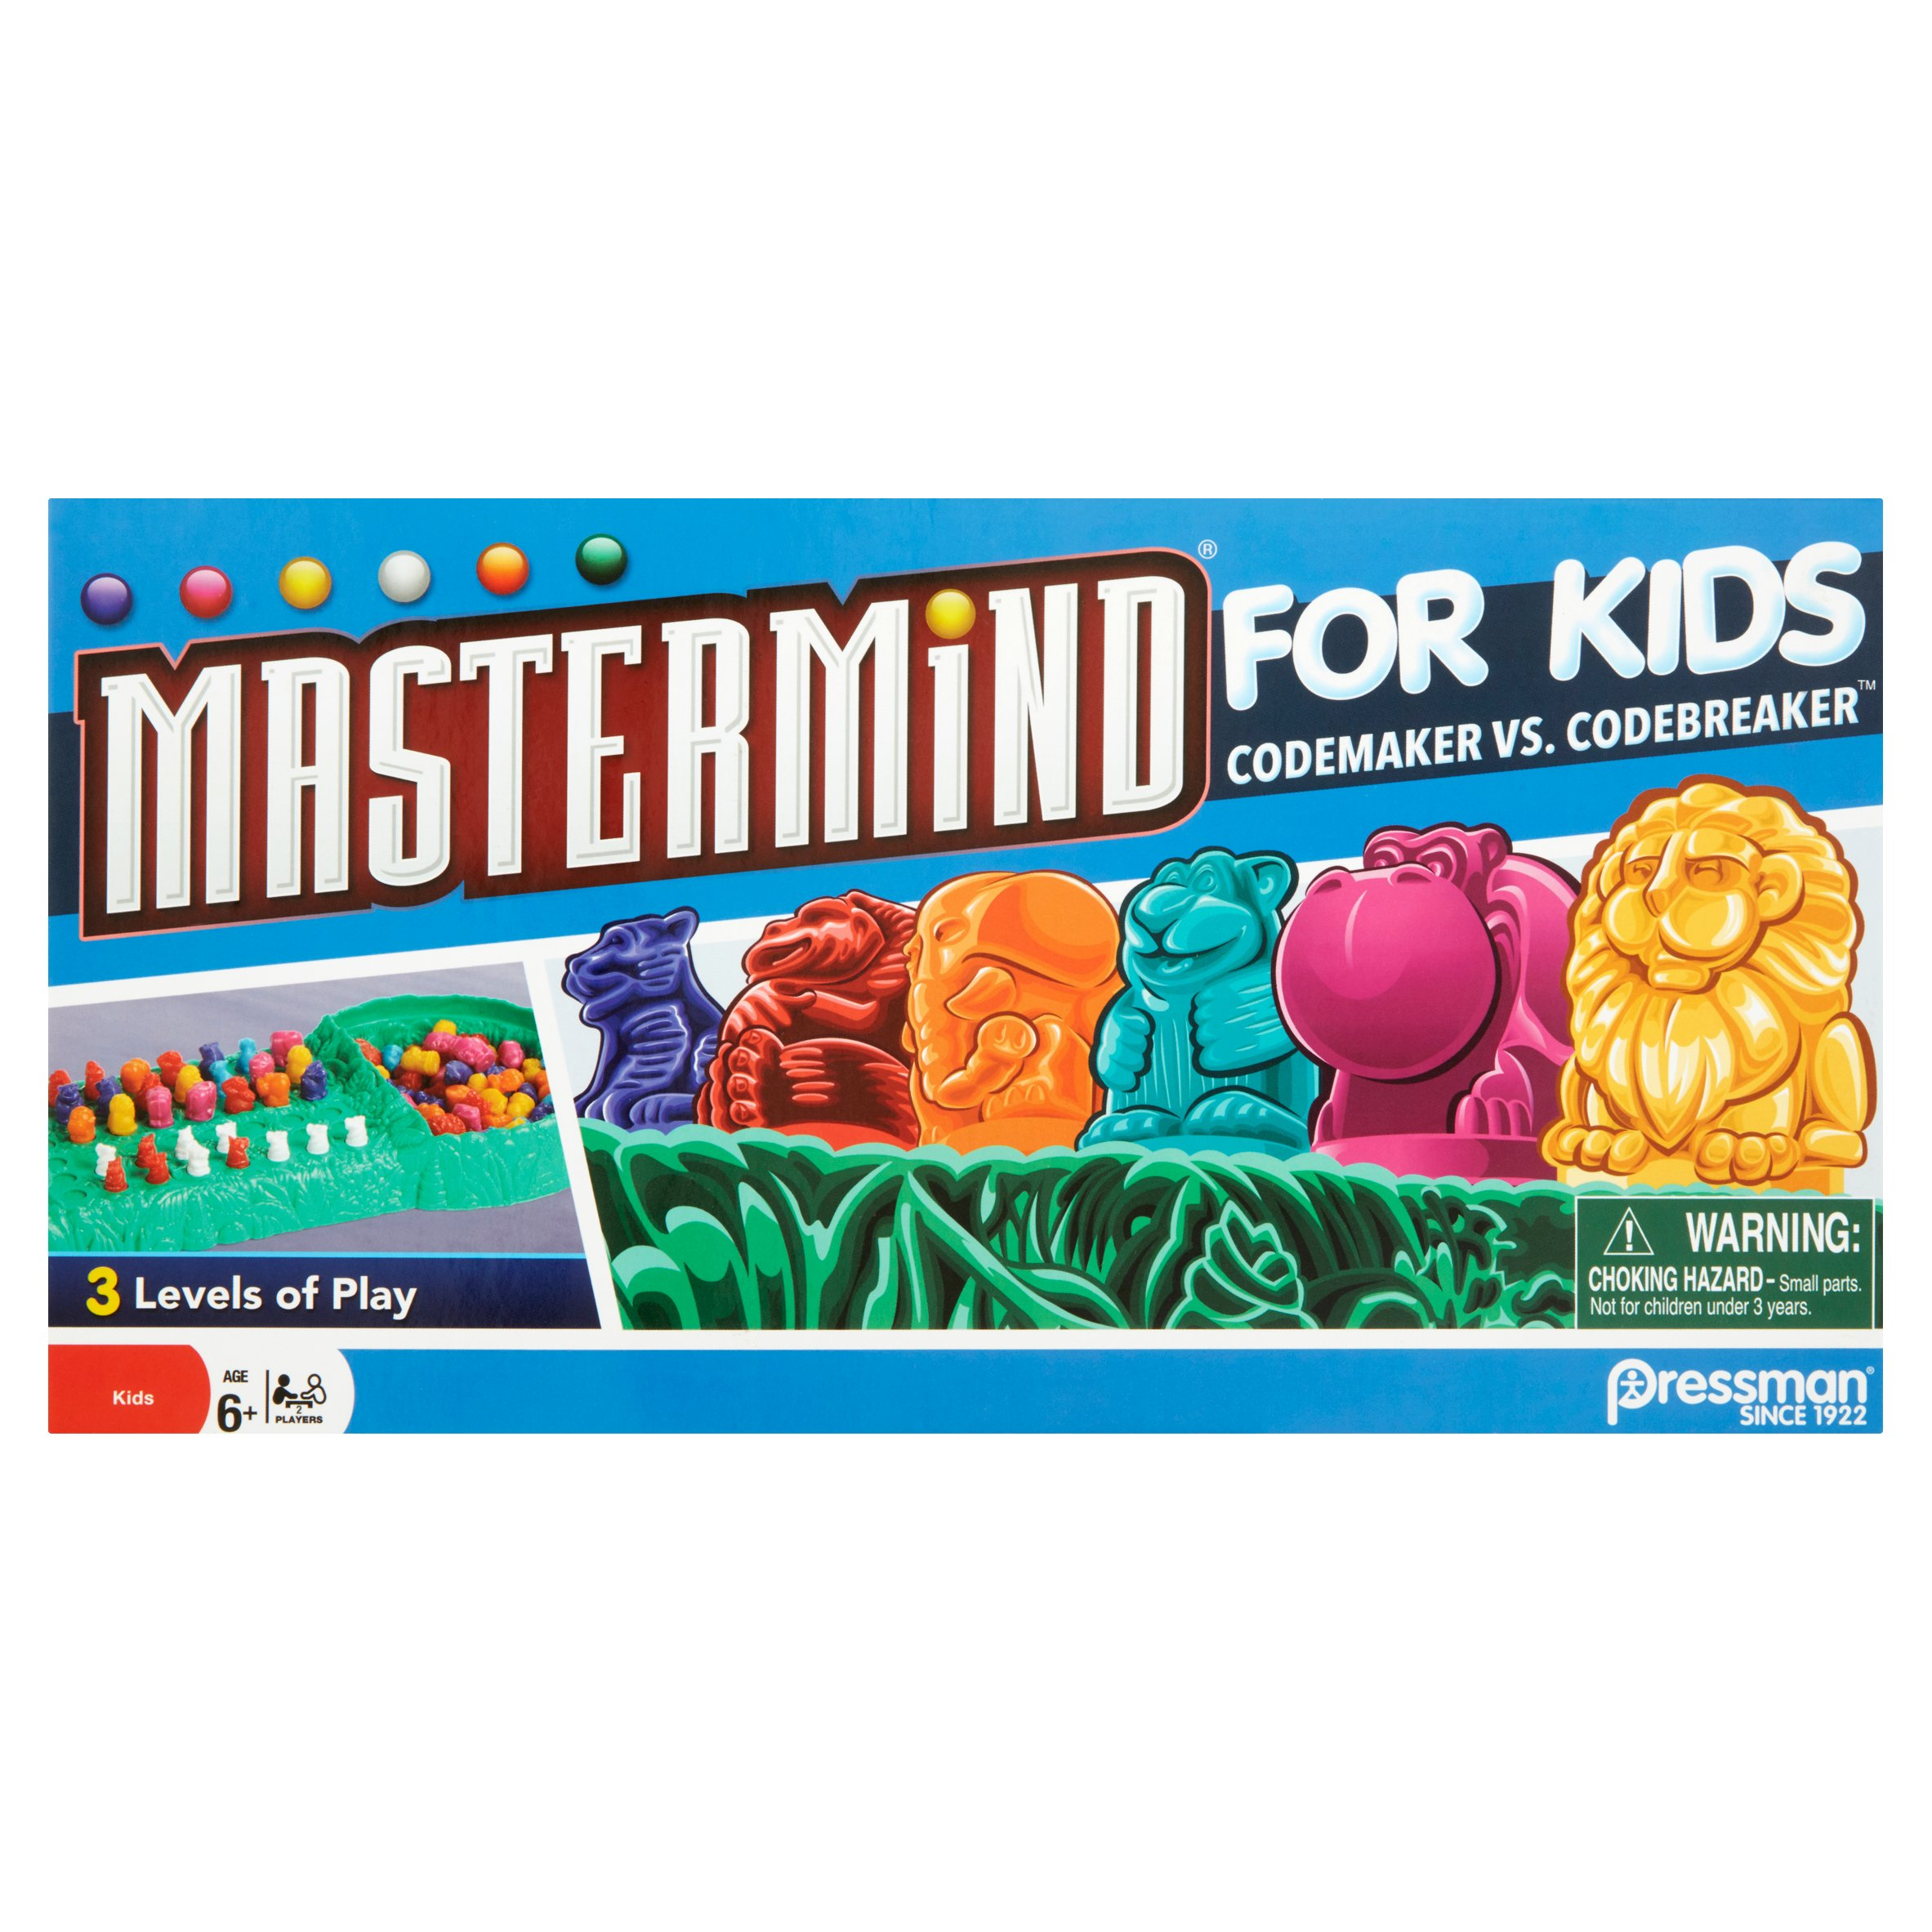 Pressman Mastermind for Kids Codemaker vs. Codebreaker Toy Age 6+